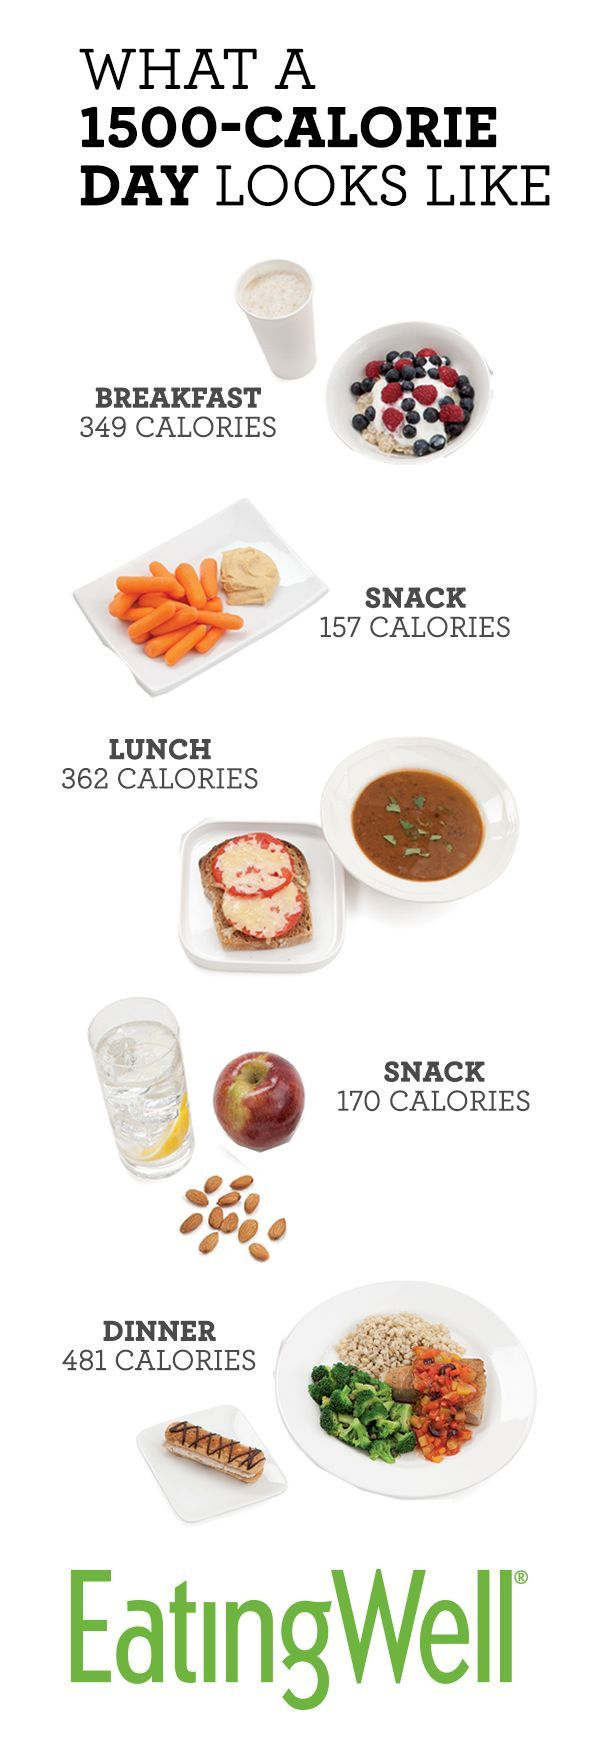 Most people will lose weight on a daily diet of 1 500 calories  which is the total calorie count for all the food pictured here..